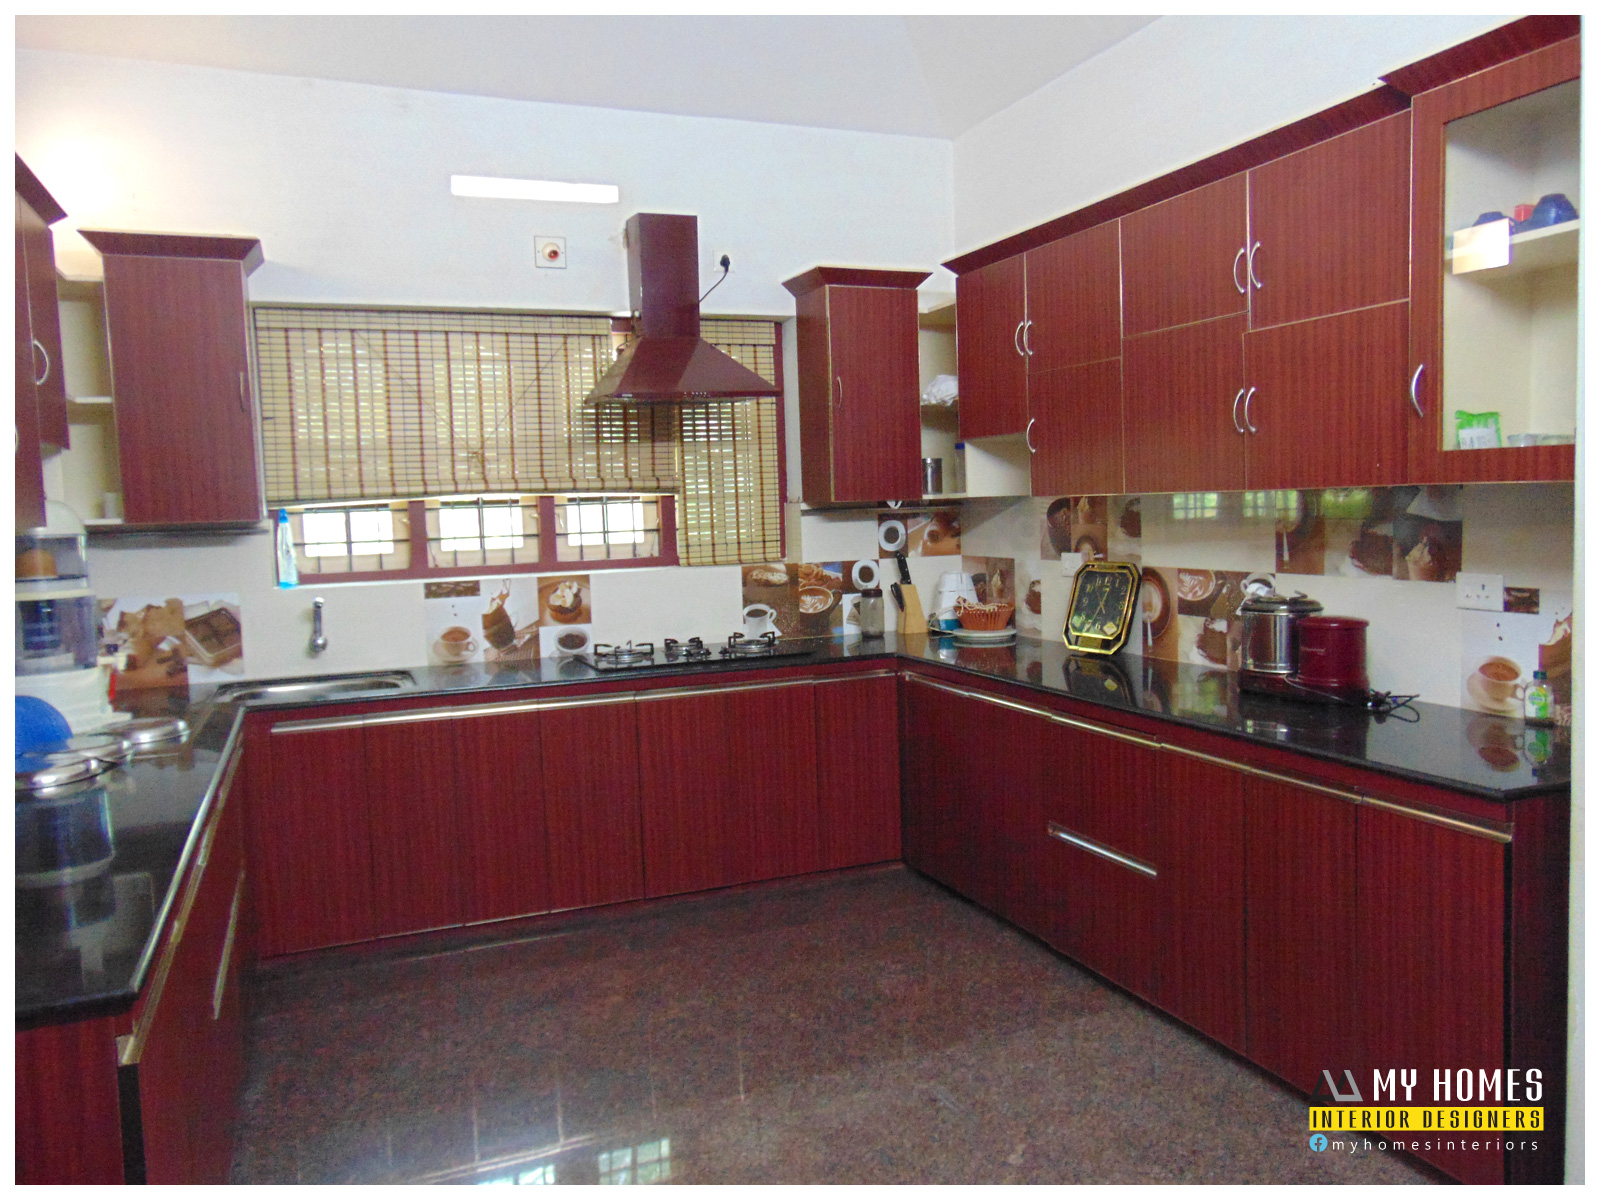 Traditional homes house interior pooja room designs kerala for Interior design images kitchen